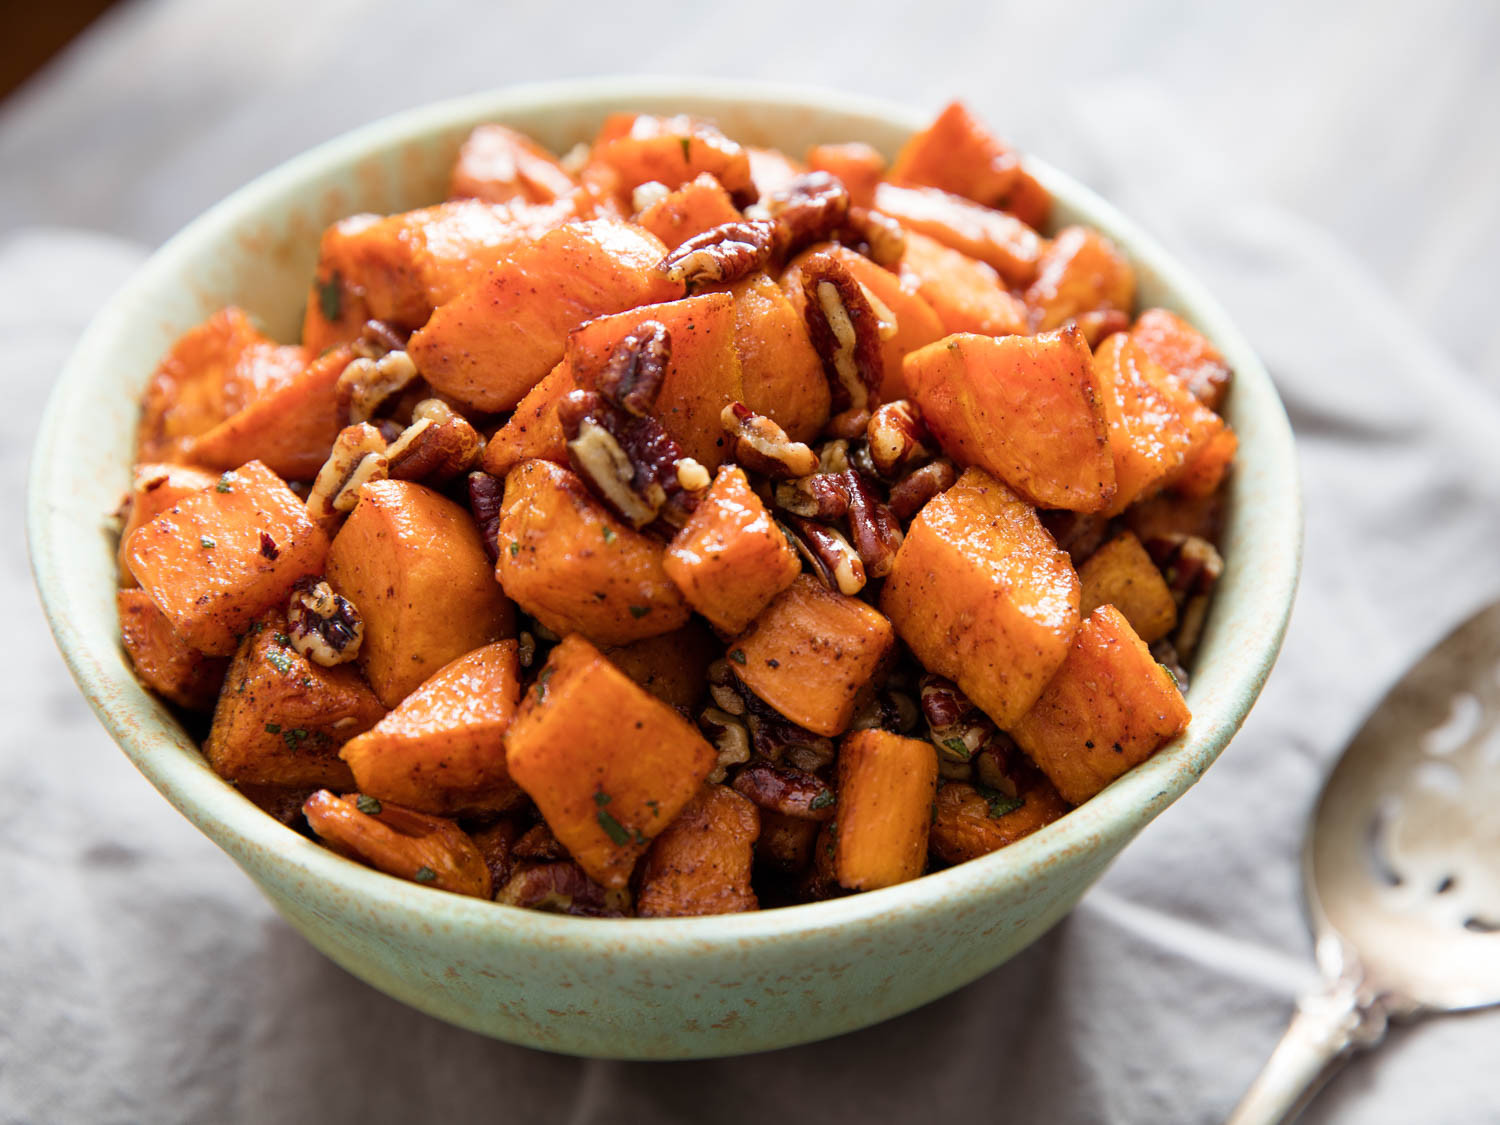 Sweet Potato Thanksgiving  14 Sweet Potato Recipes for Thanksgiving That Are Just